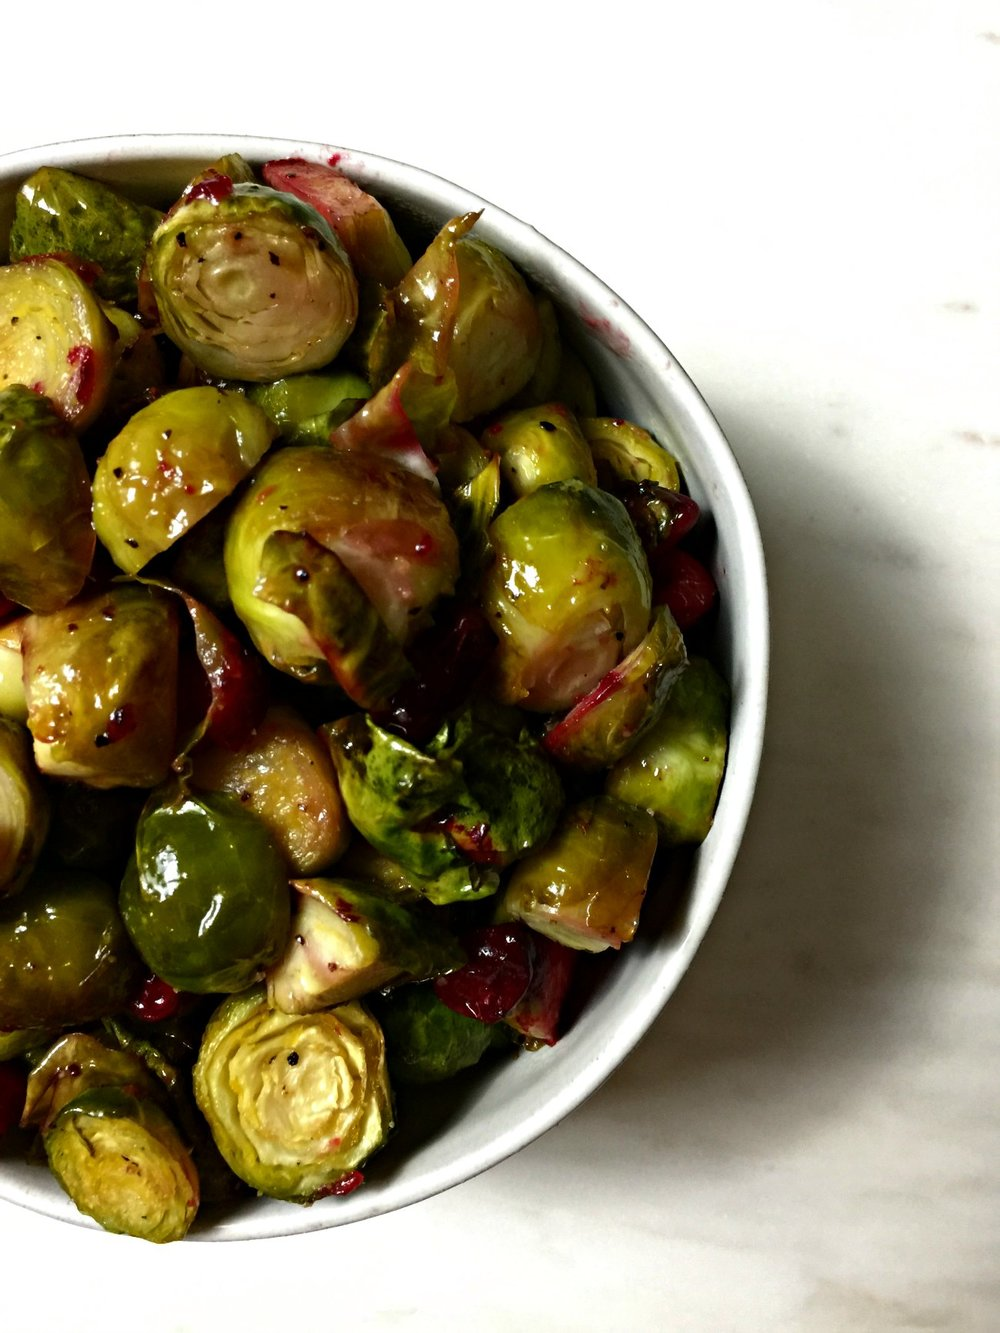 brussels sprouts with cranberries in a white bowl on a white marble surface